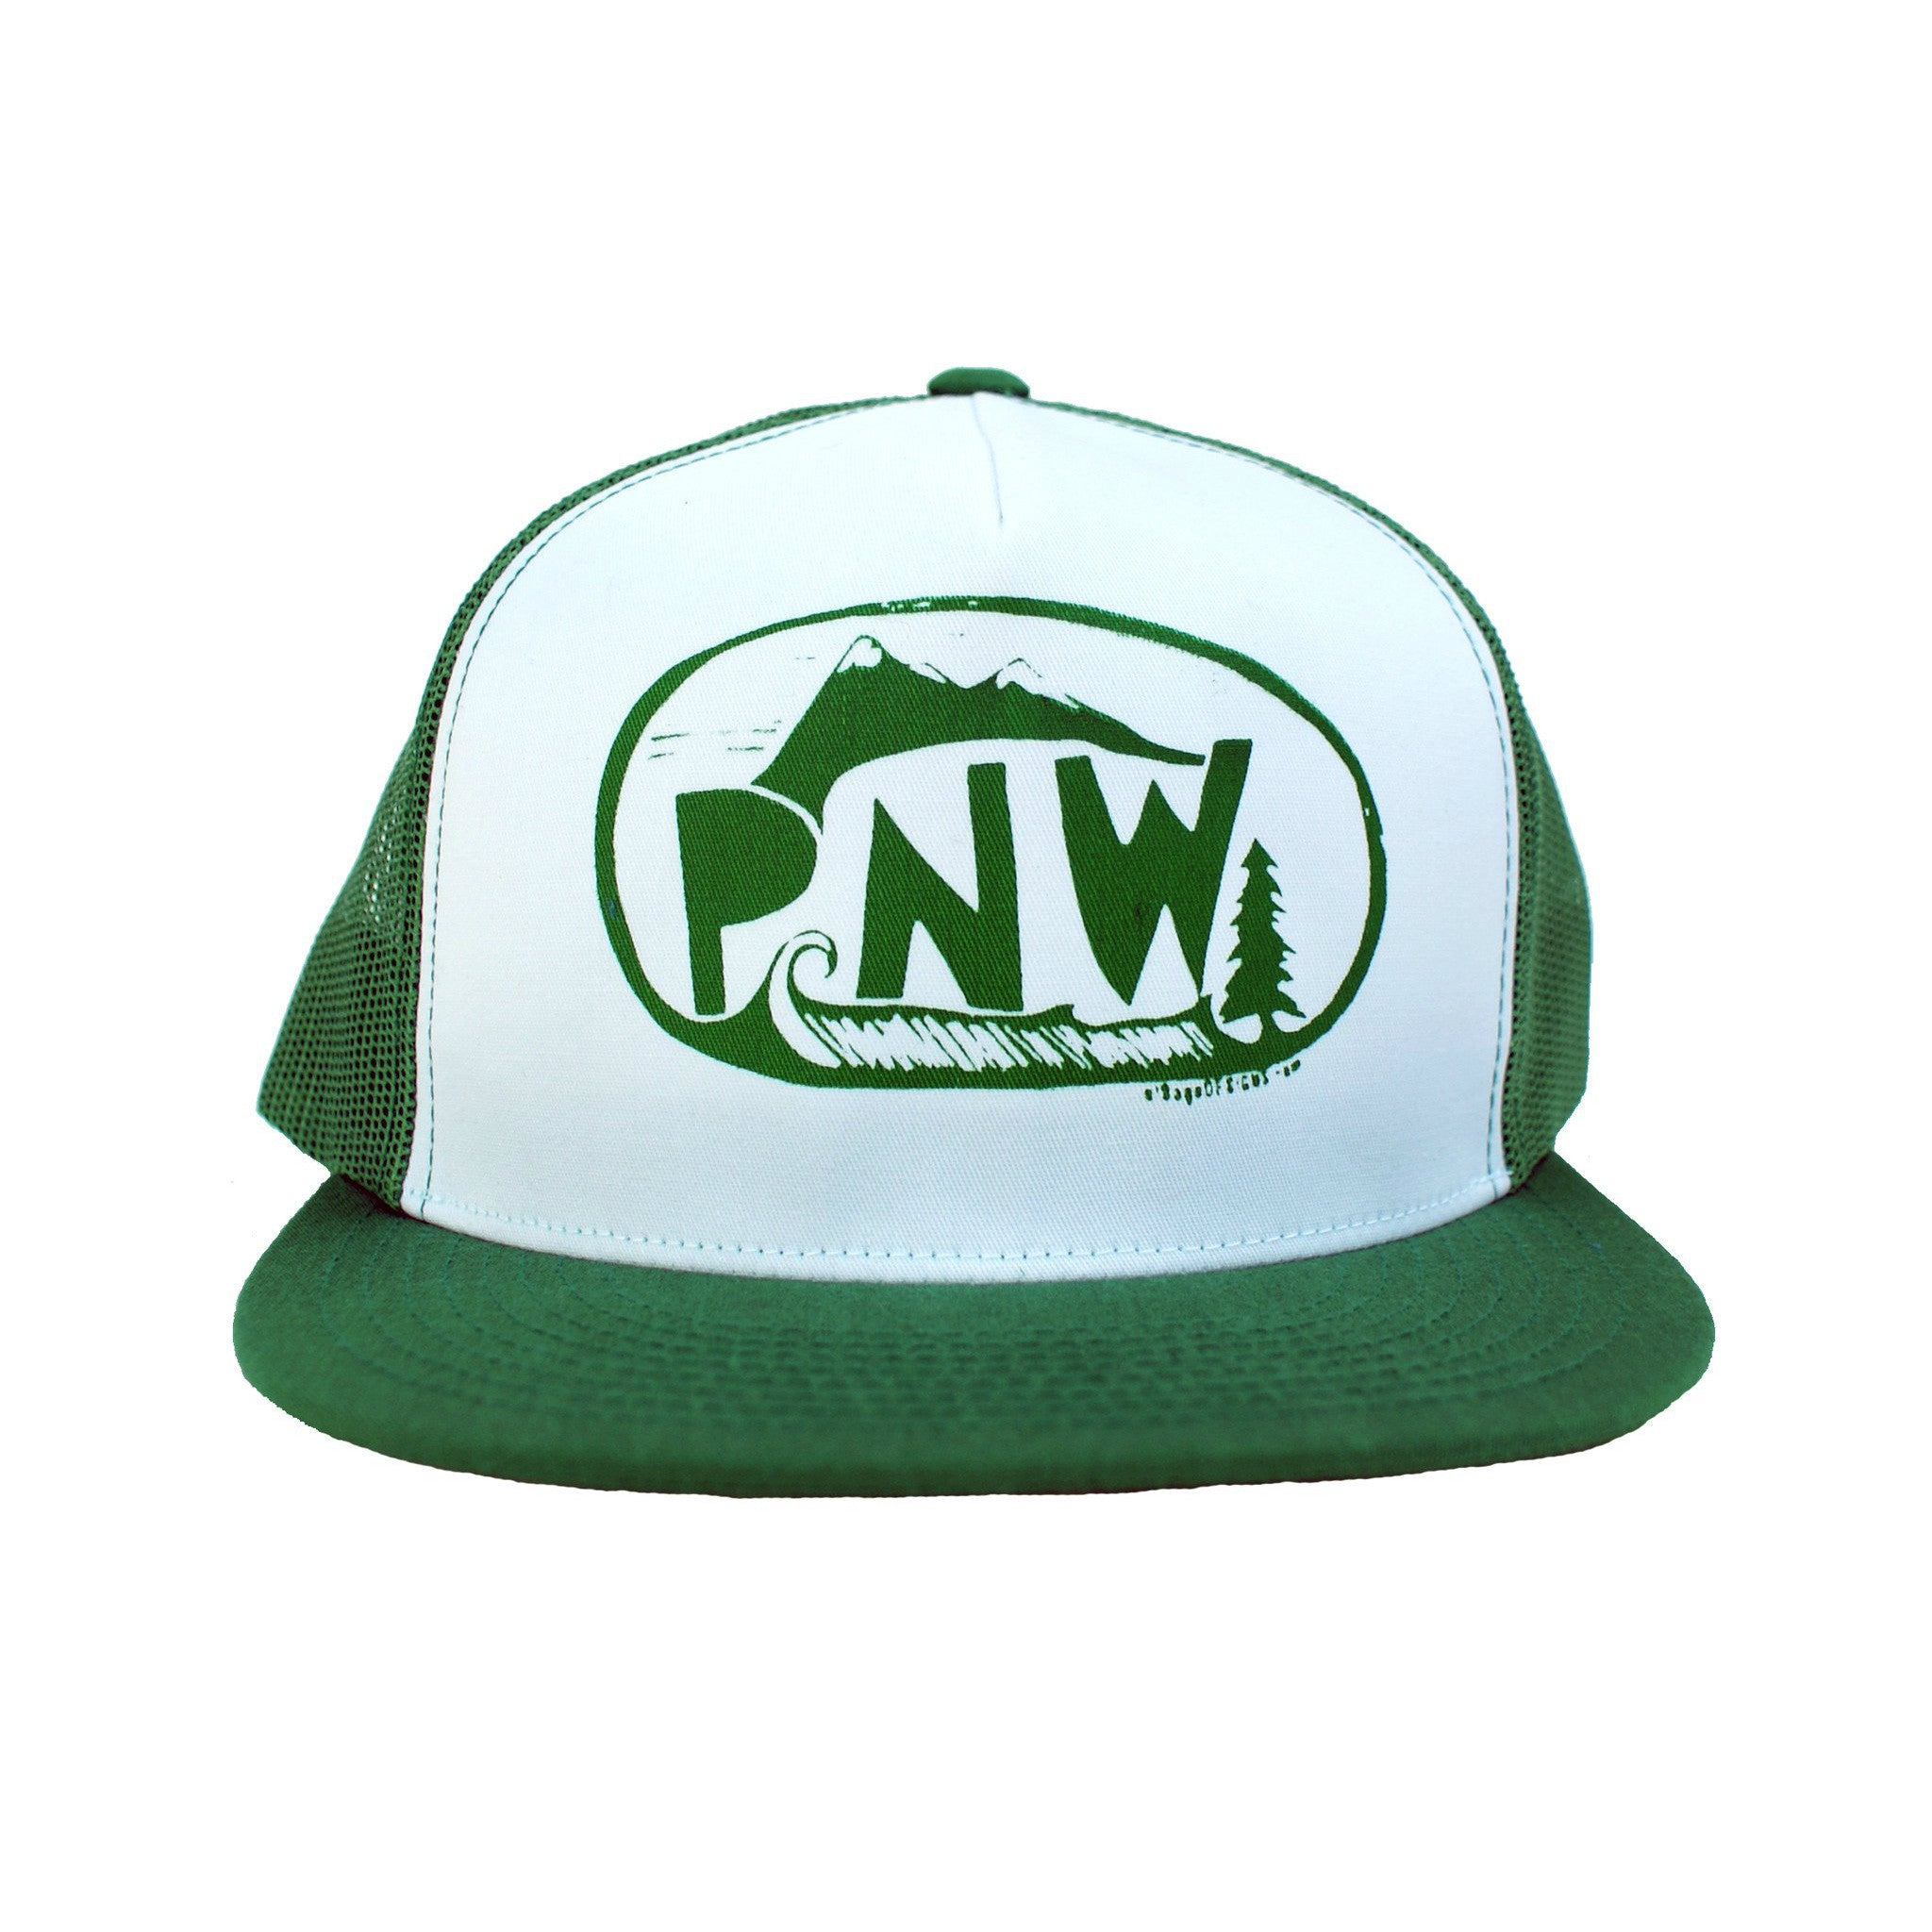 PNW Structured Trucker Hat